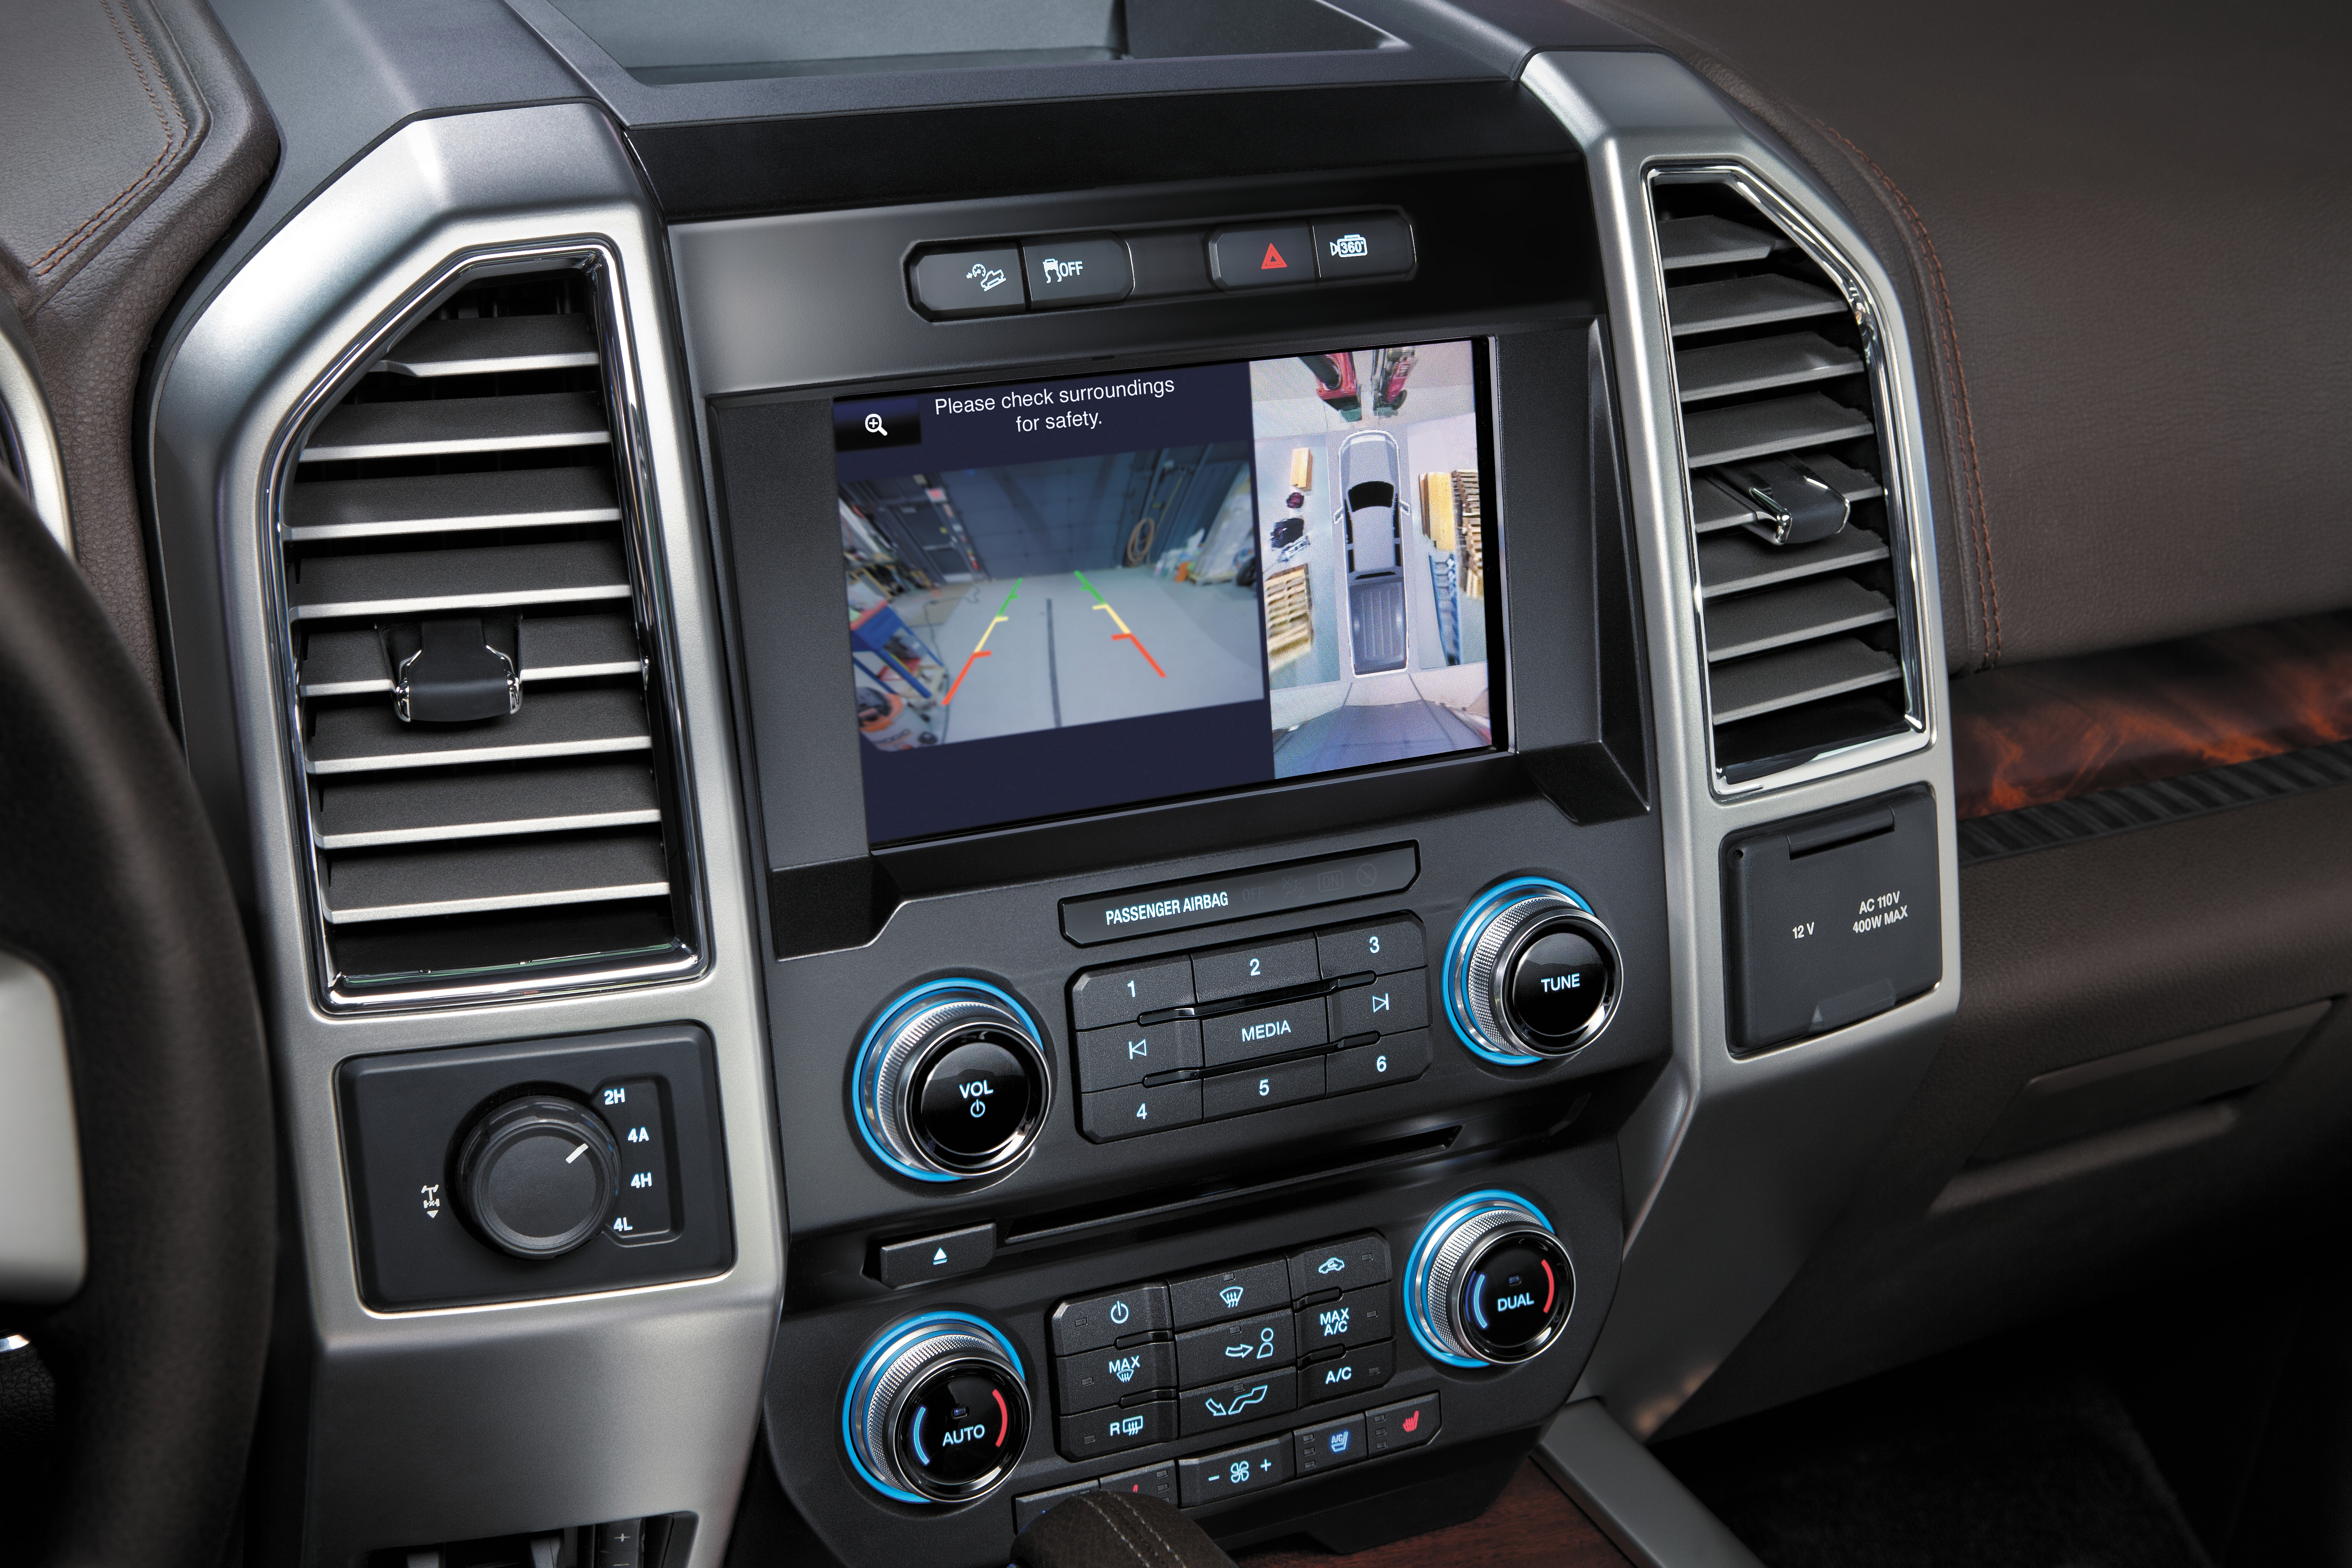 Ford F 150 Wallpapers Pictures Images 2015 Navigation Radio Wallpaper 5650x3767